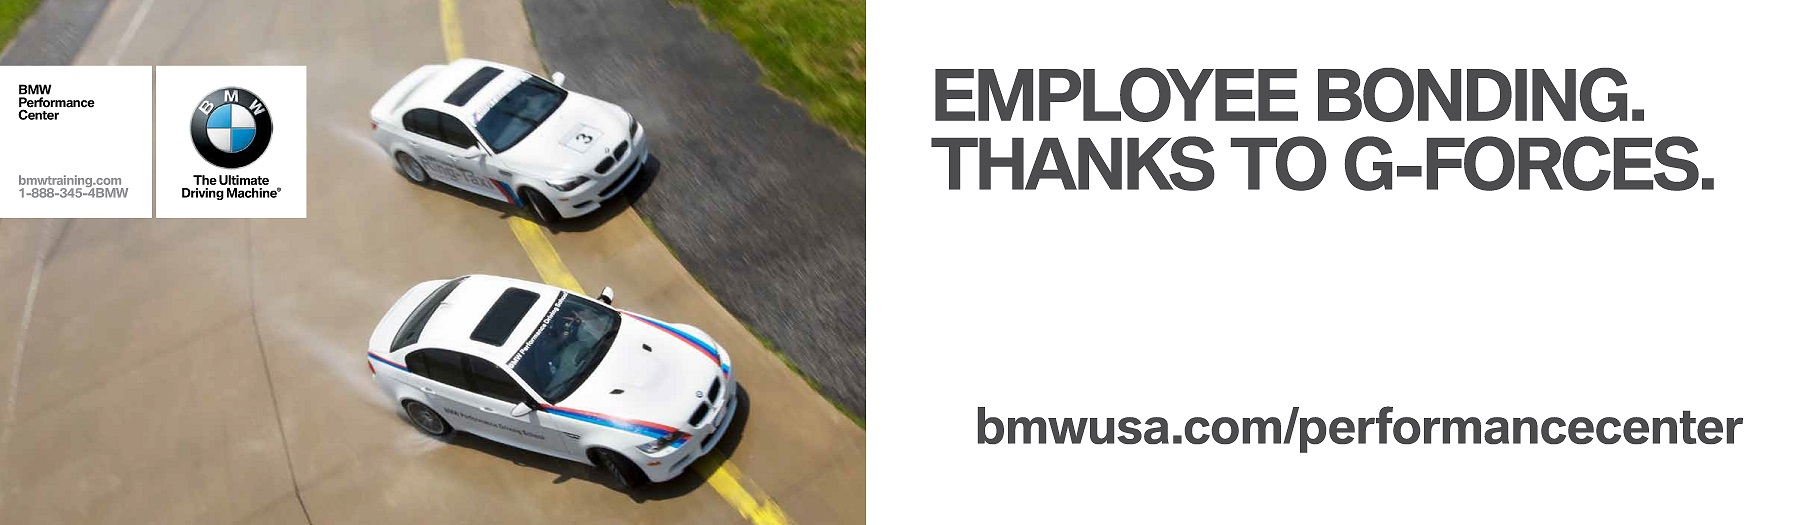 BMW-Performance-Center-advertising-copywriting-byLochness-Marketing-greenville-corporate-bonding